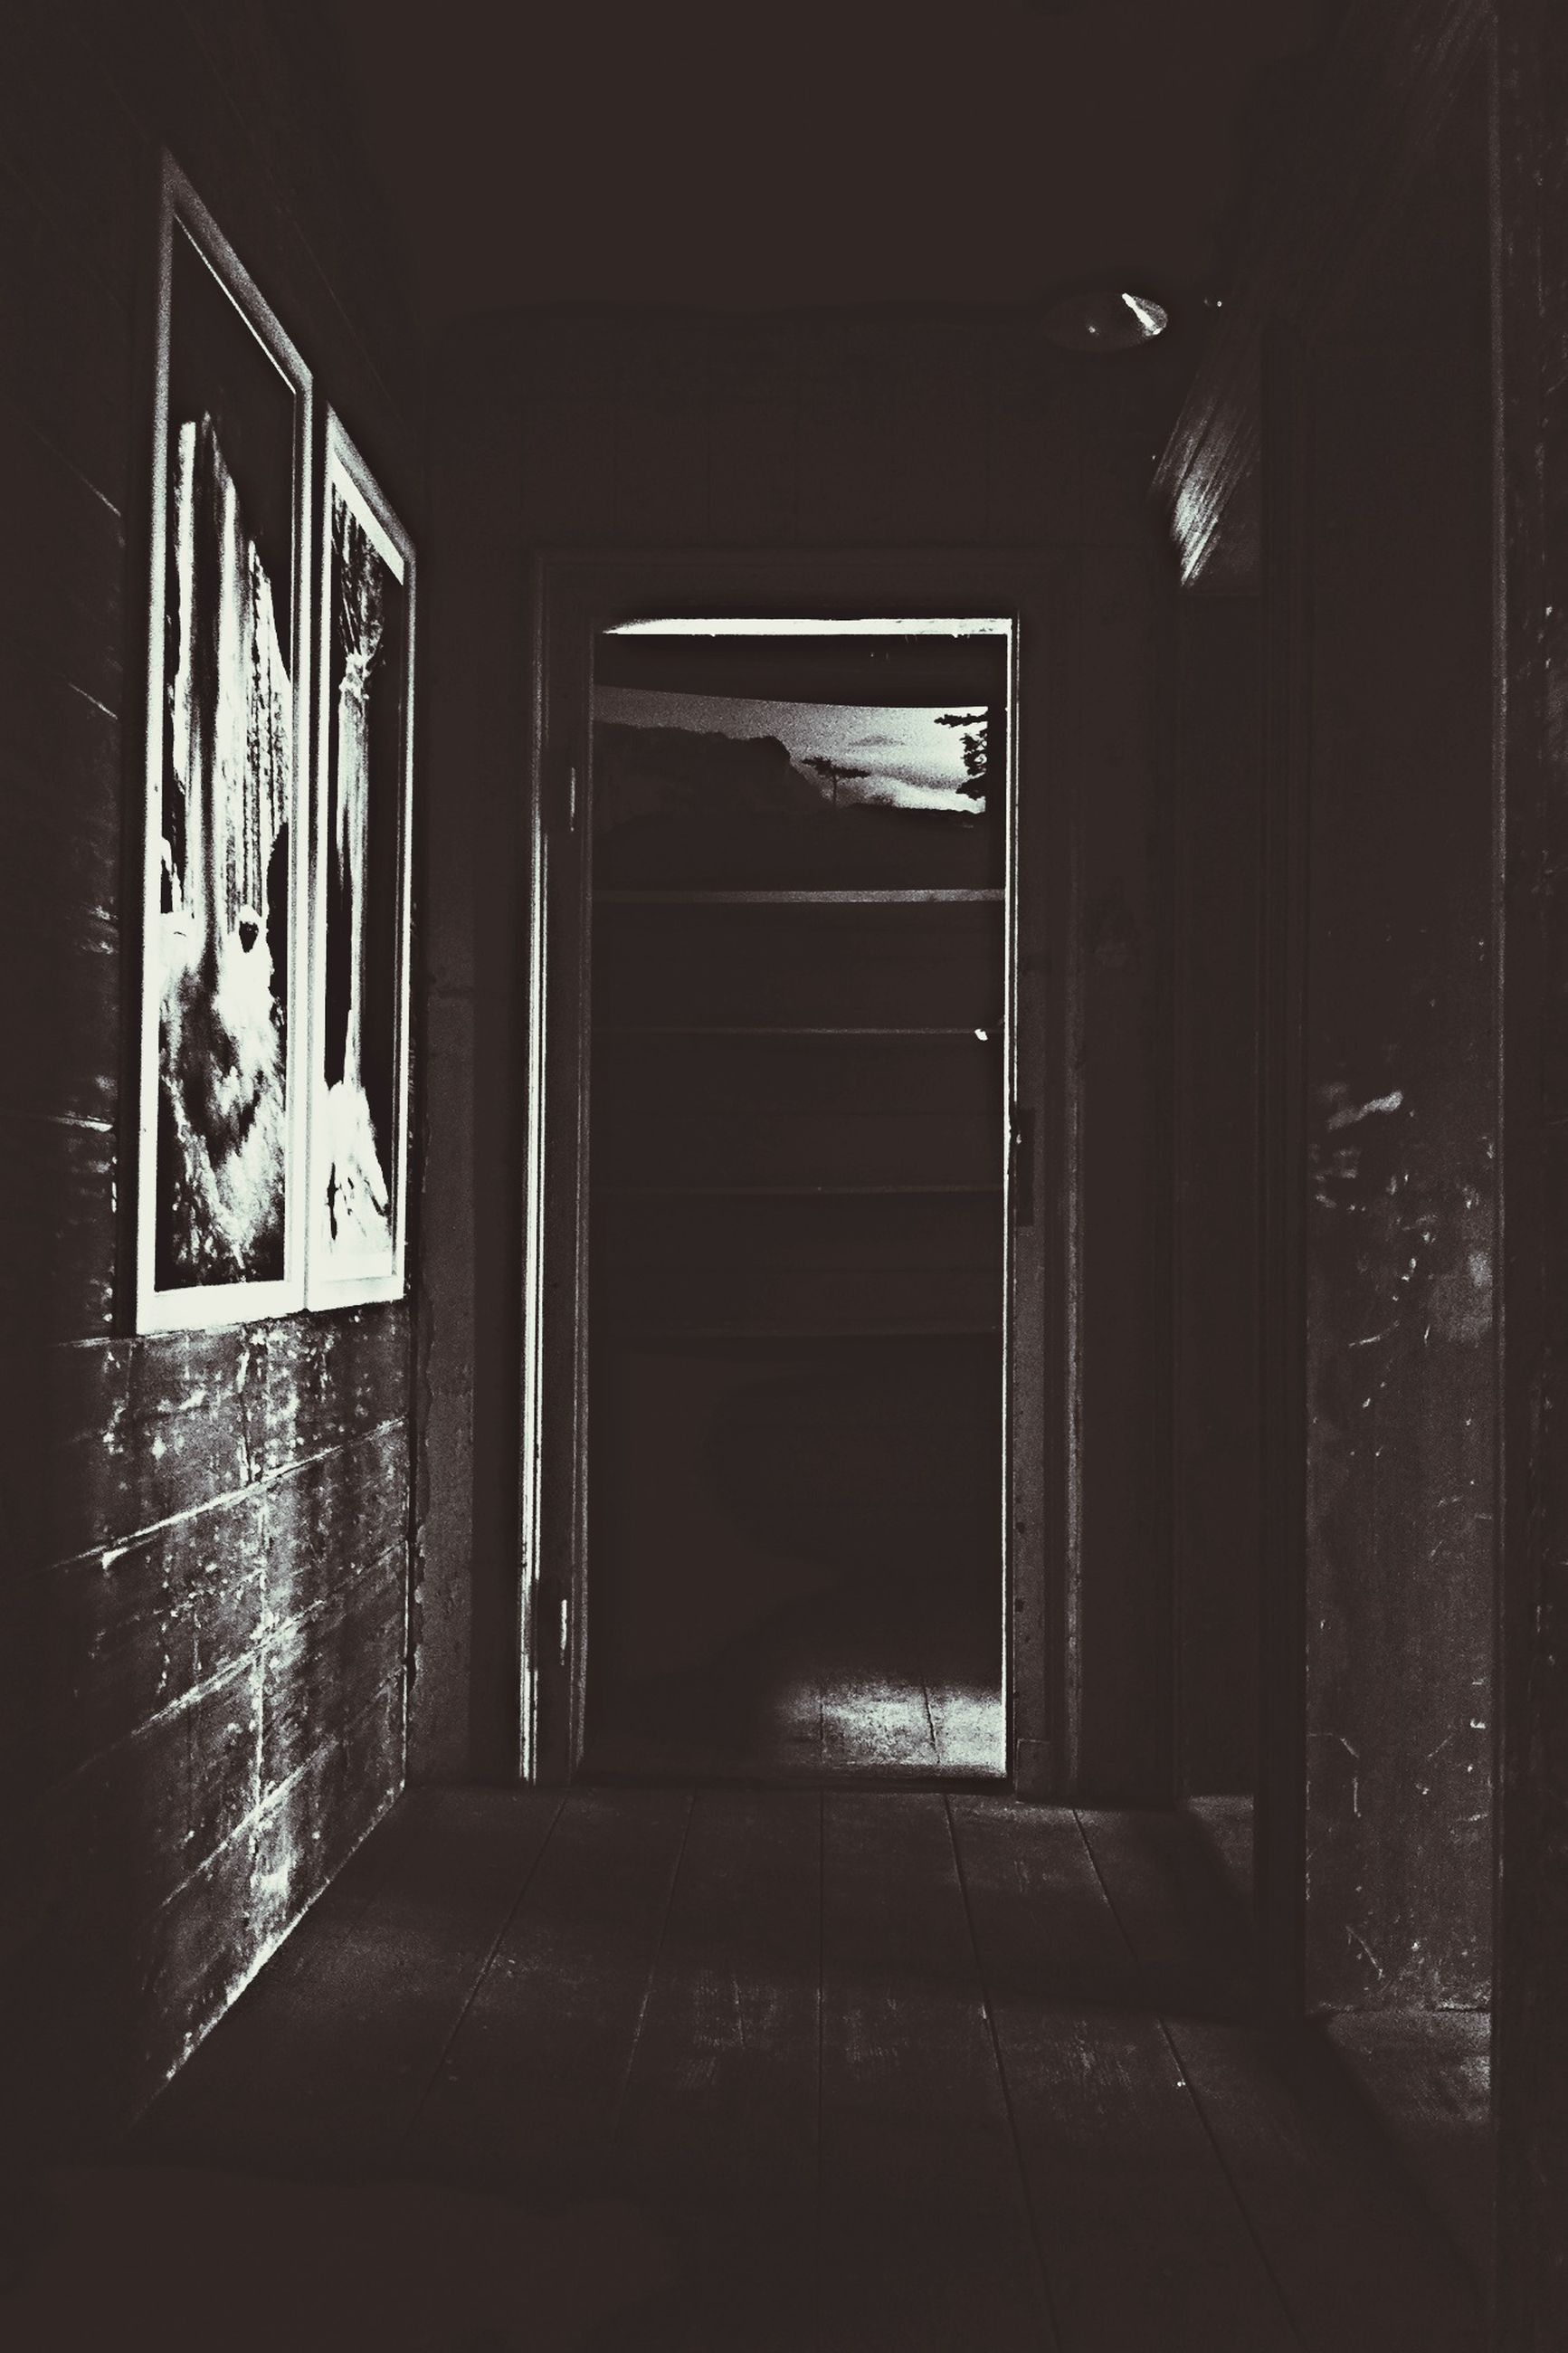 indoors, window, door, house, architecture, built structure, closed, open, doorway, entrance, glass - material, wood - material, empty, no people, home interior, abandoned, day, absence, old, sunlight